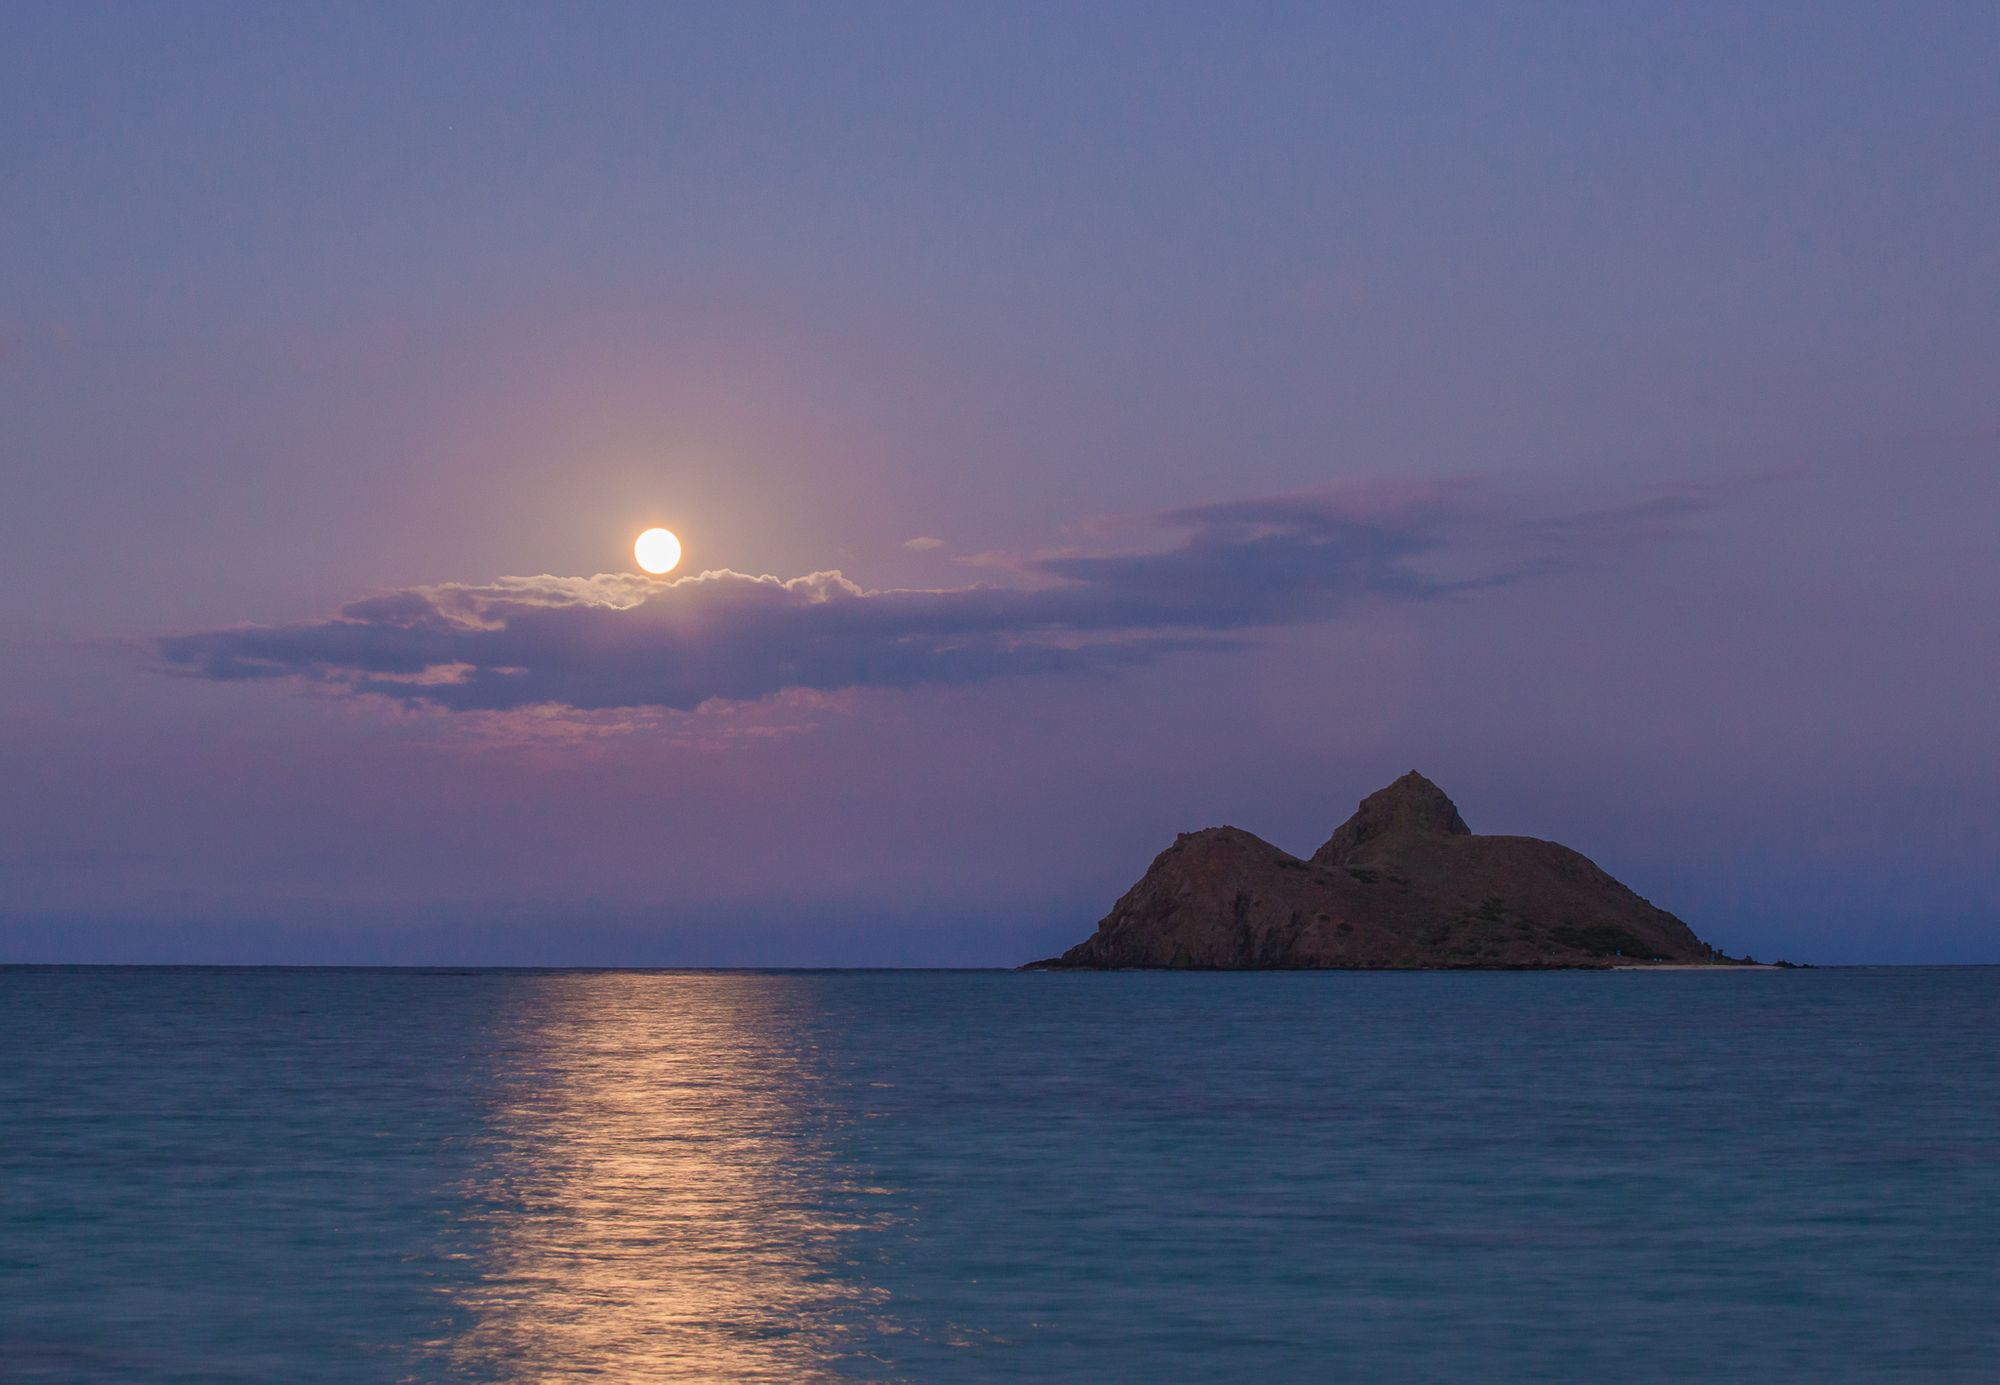 Moon from Lanikai Beach